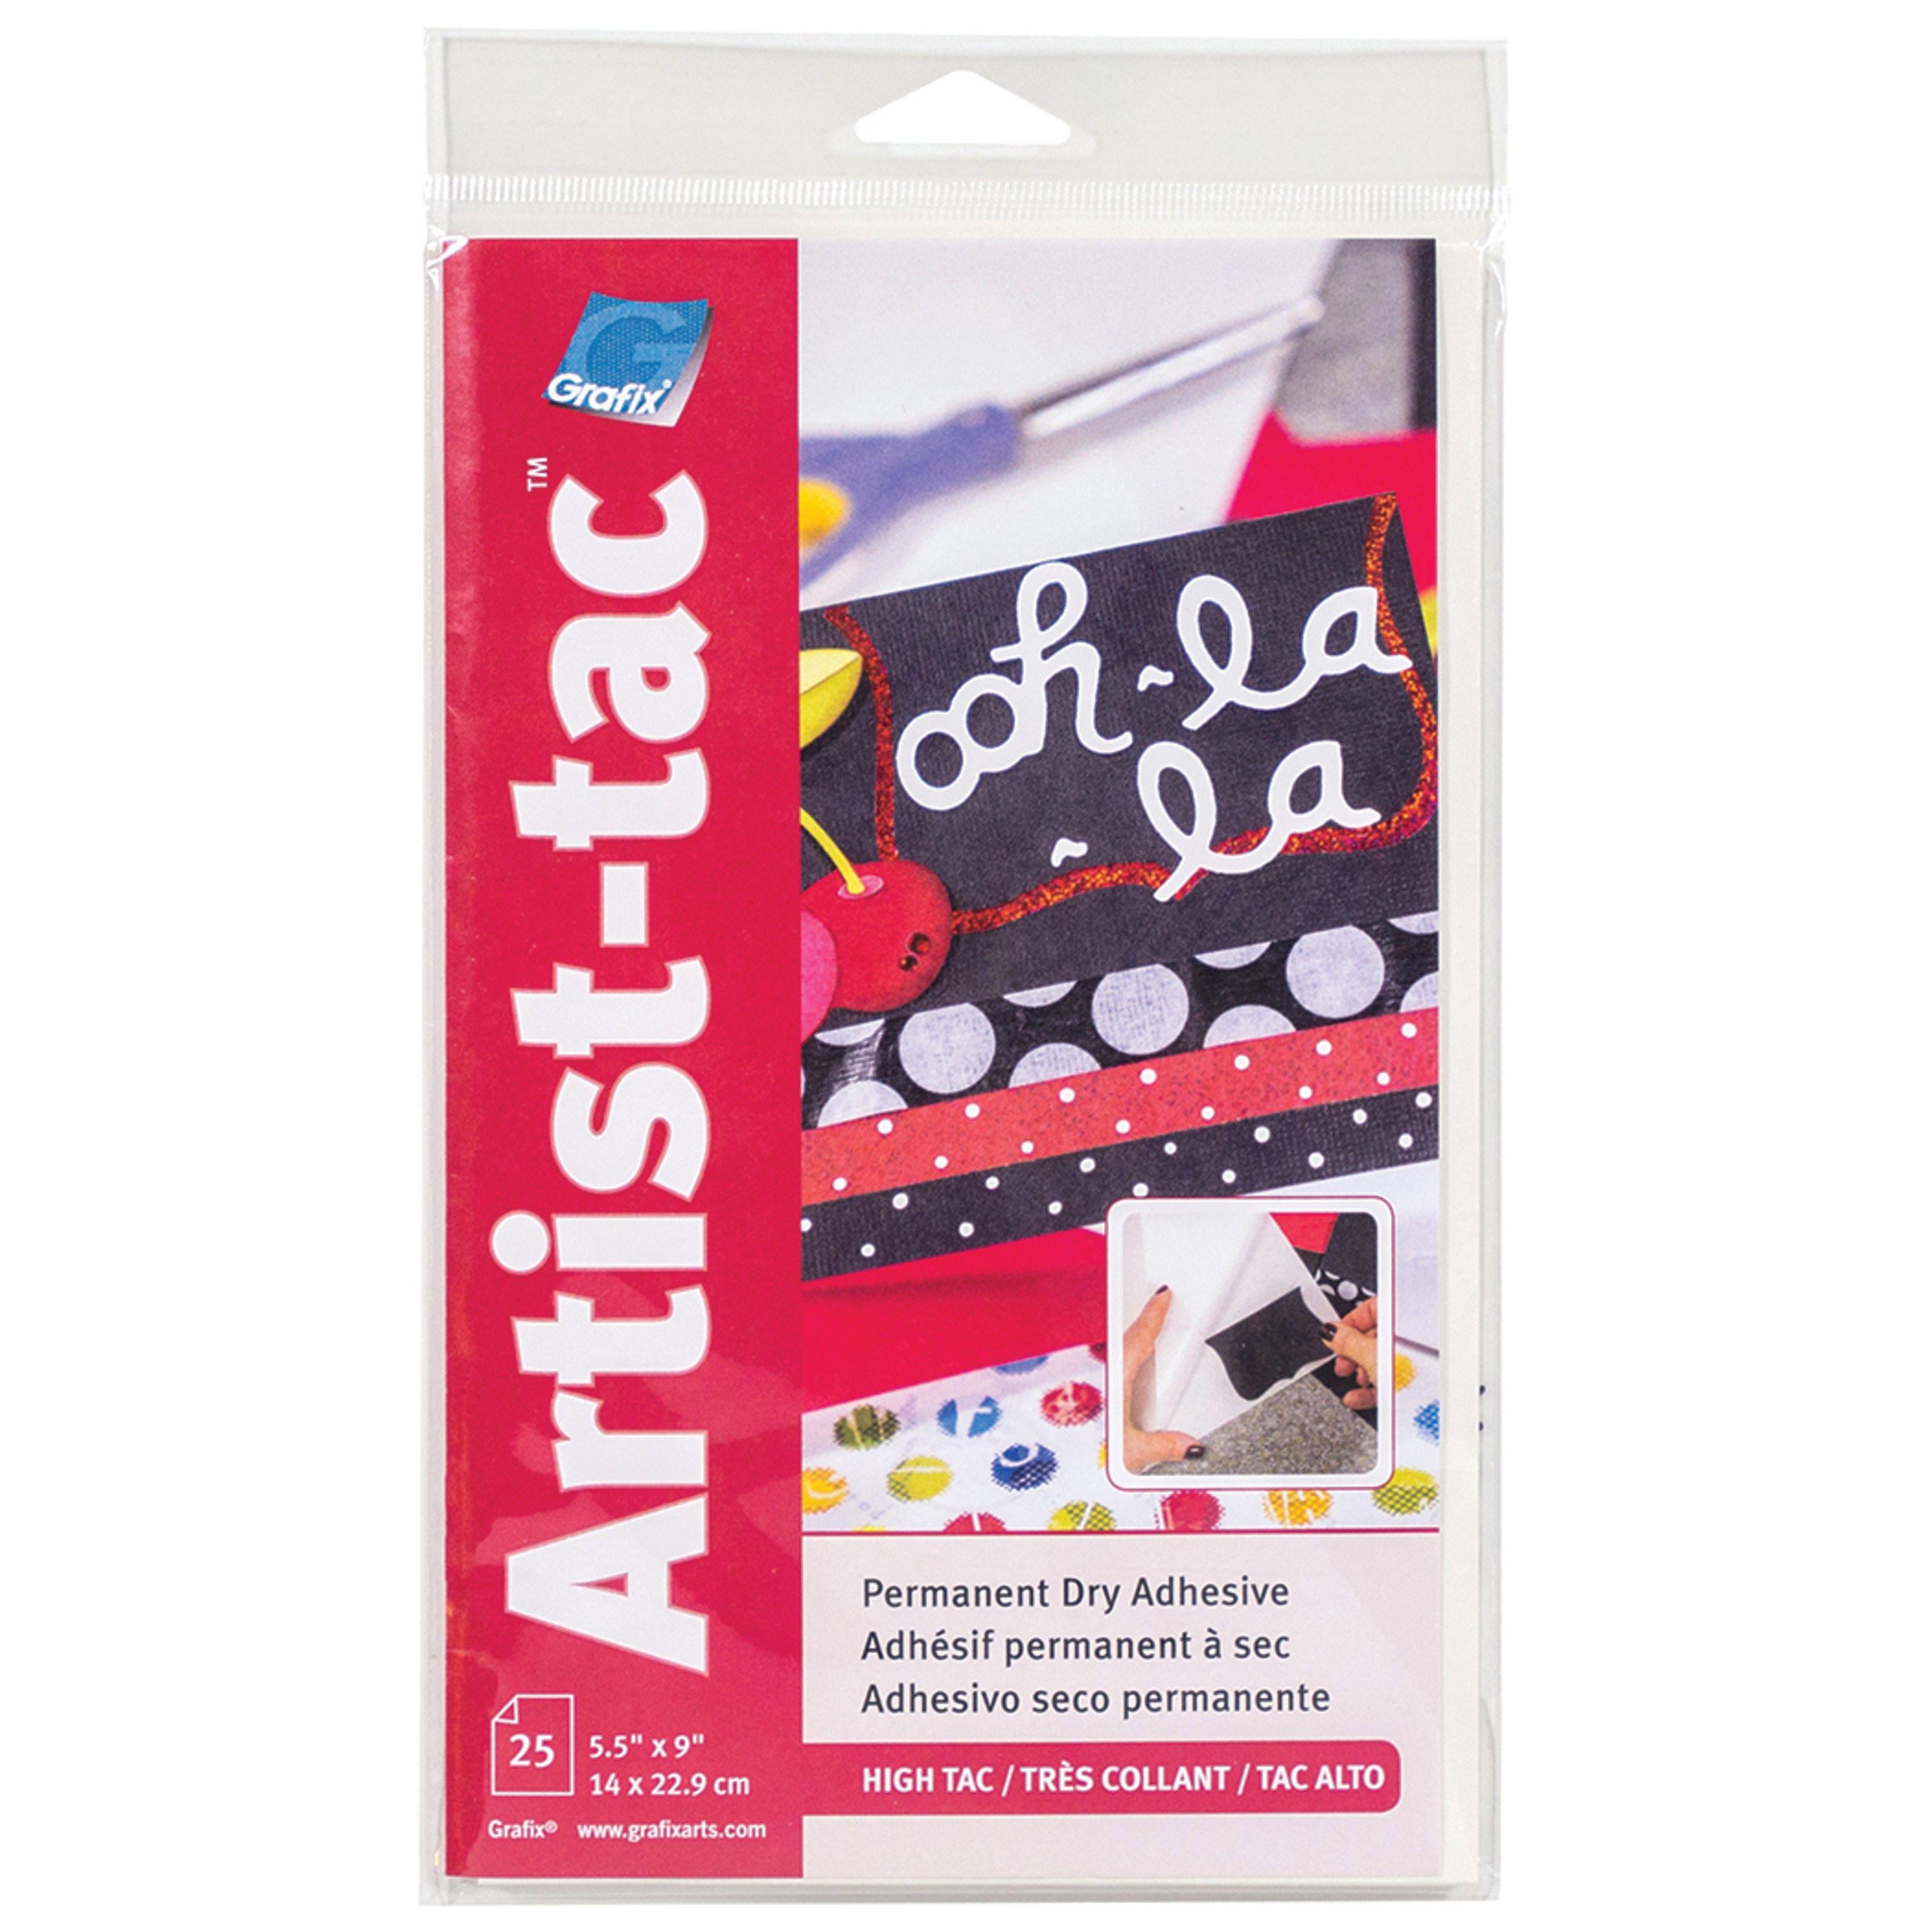 Grafix Artist-Tac Dry Adhesive Sheet, 5.5in x 9in, 25/Pkg.